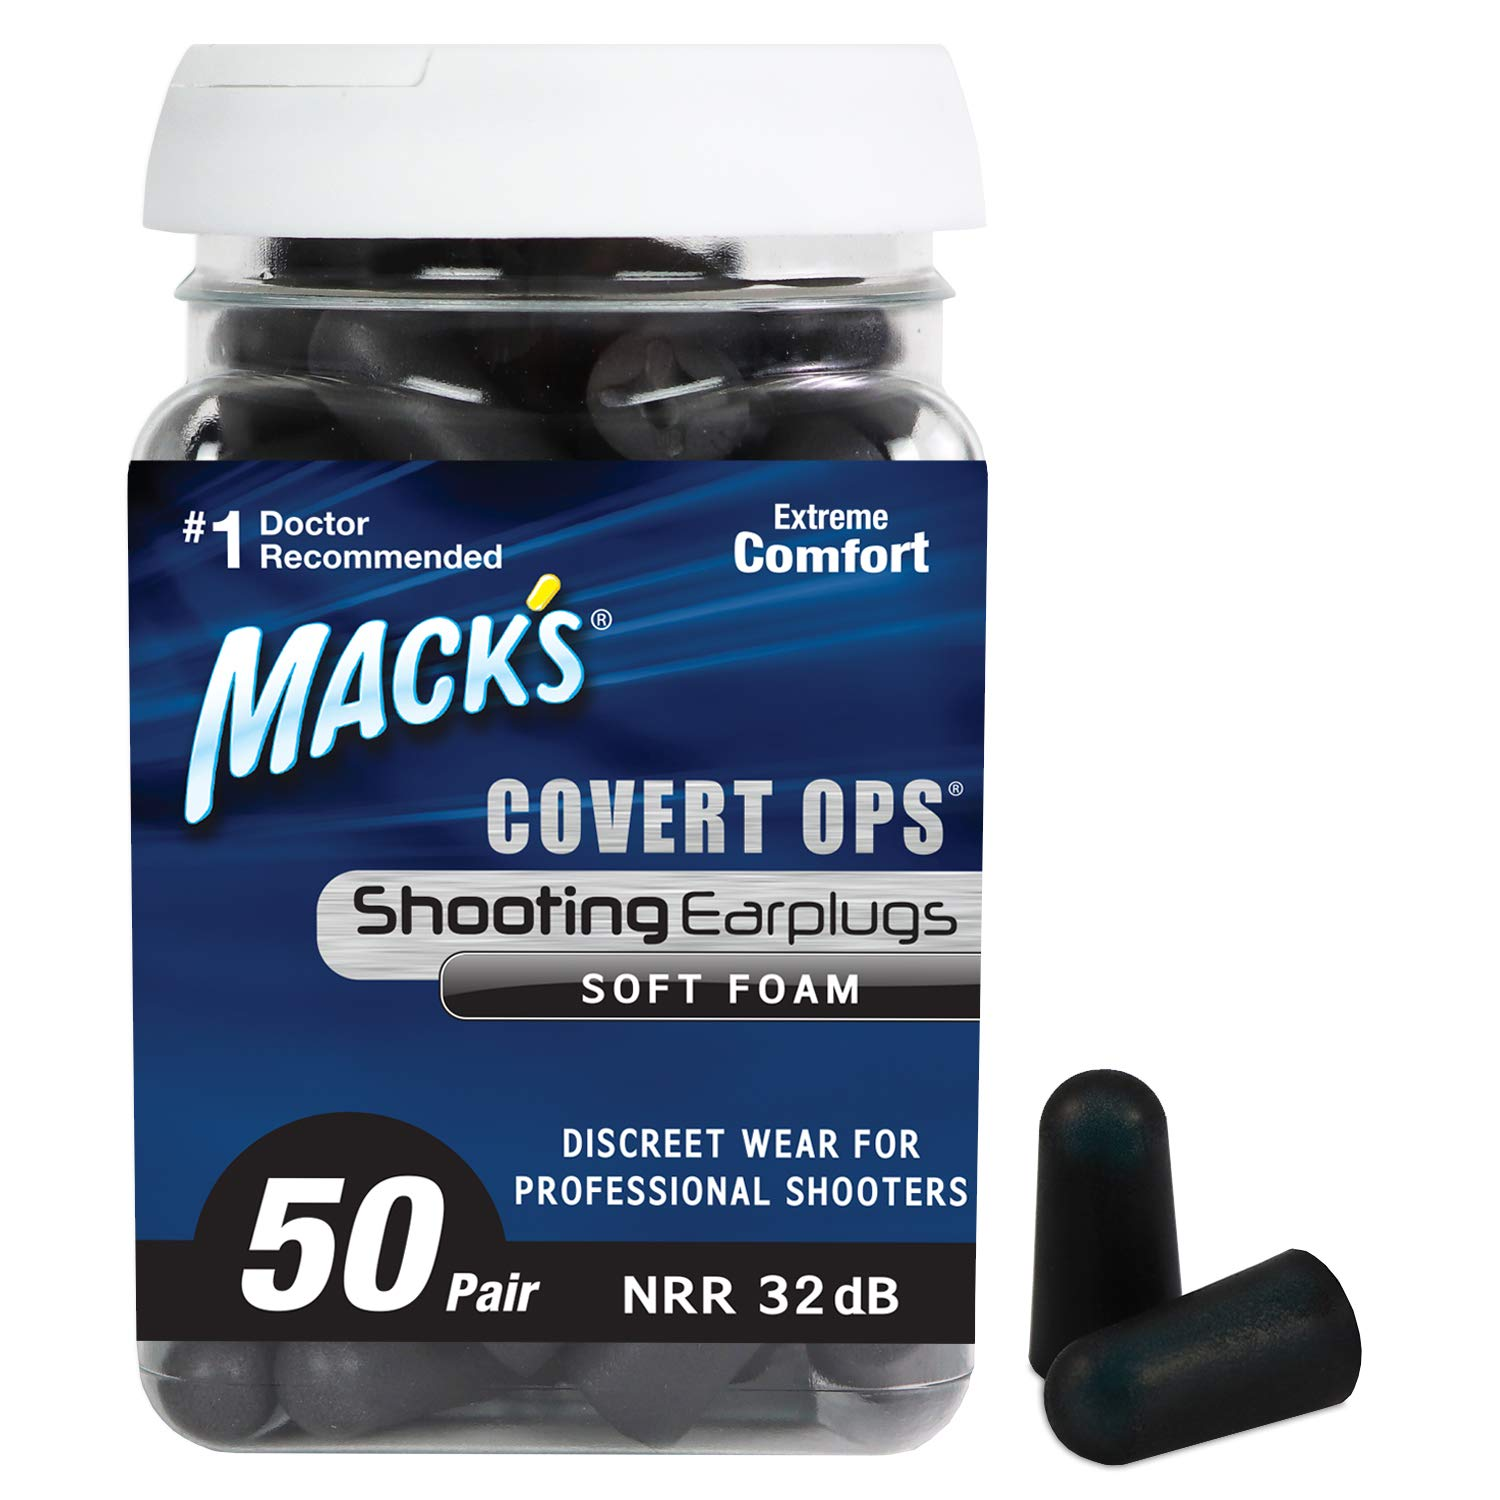 Mack's Covert Ops Soft Foam Shooting Ear Plugs, 50 Pair - 32 dB High NRR, Comfortable Earplugs for Hunting, Tactical, Target, Skeet and Trap Shooting by Mack's